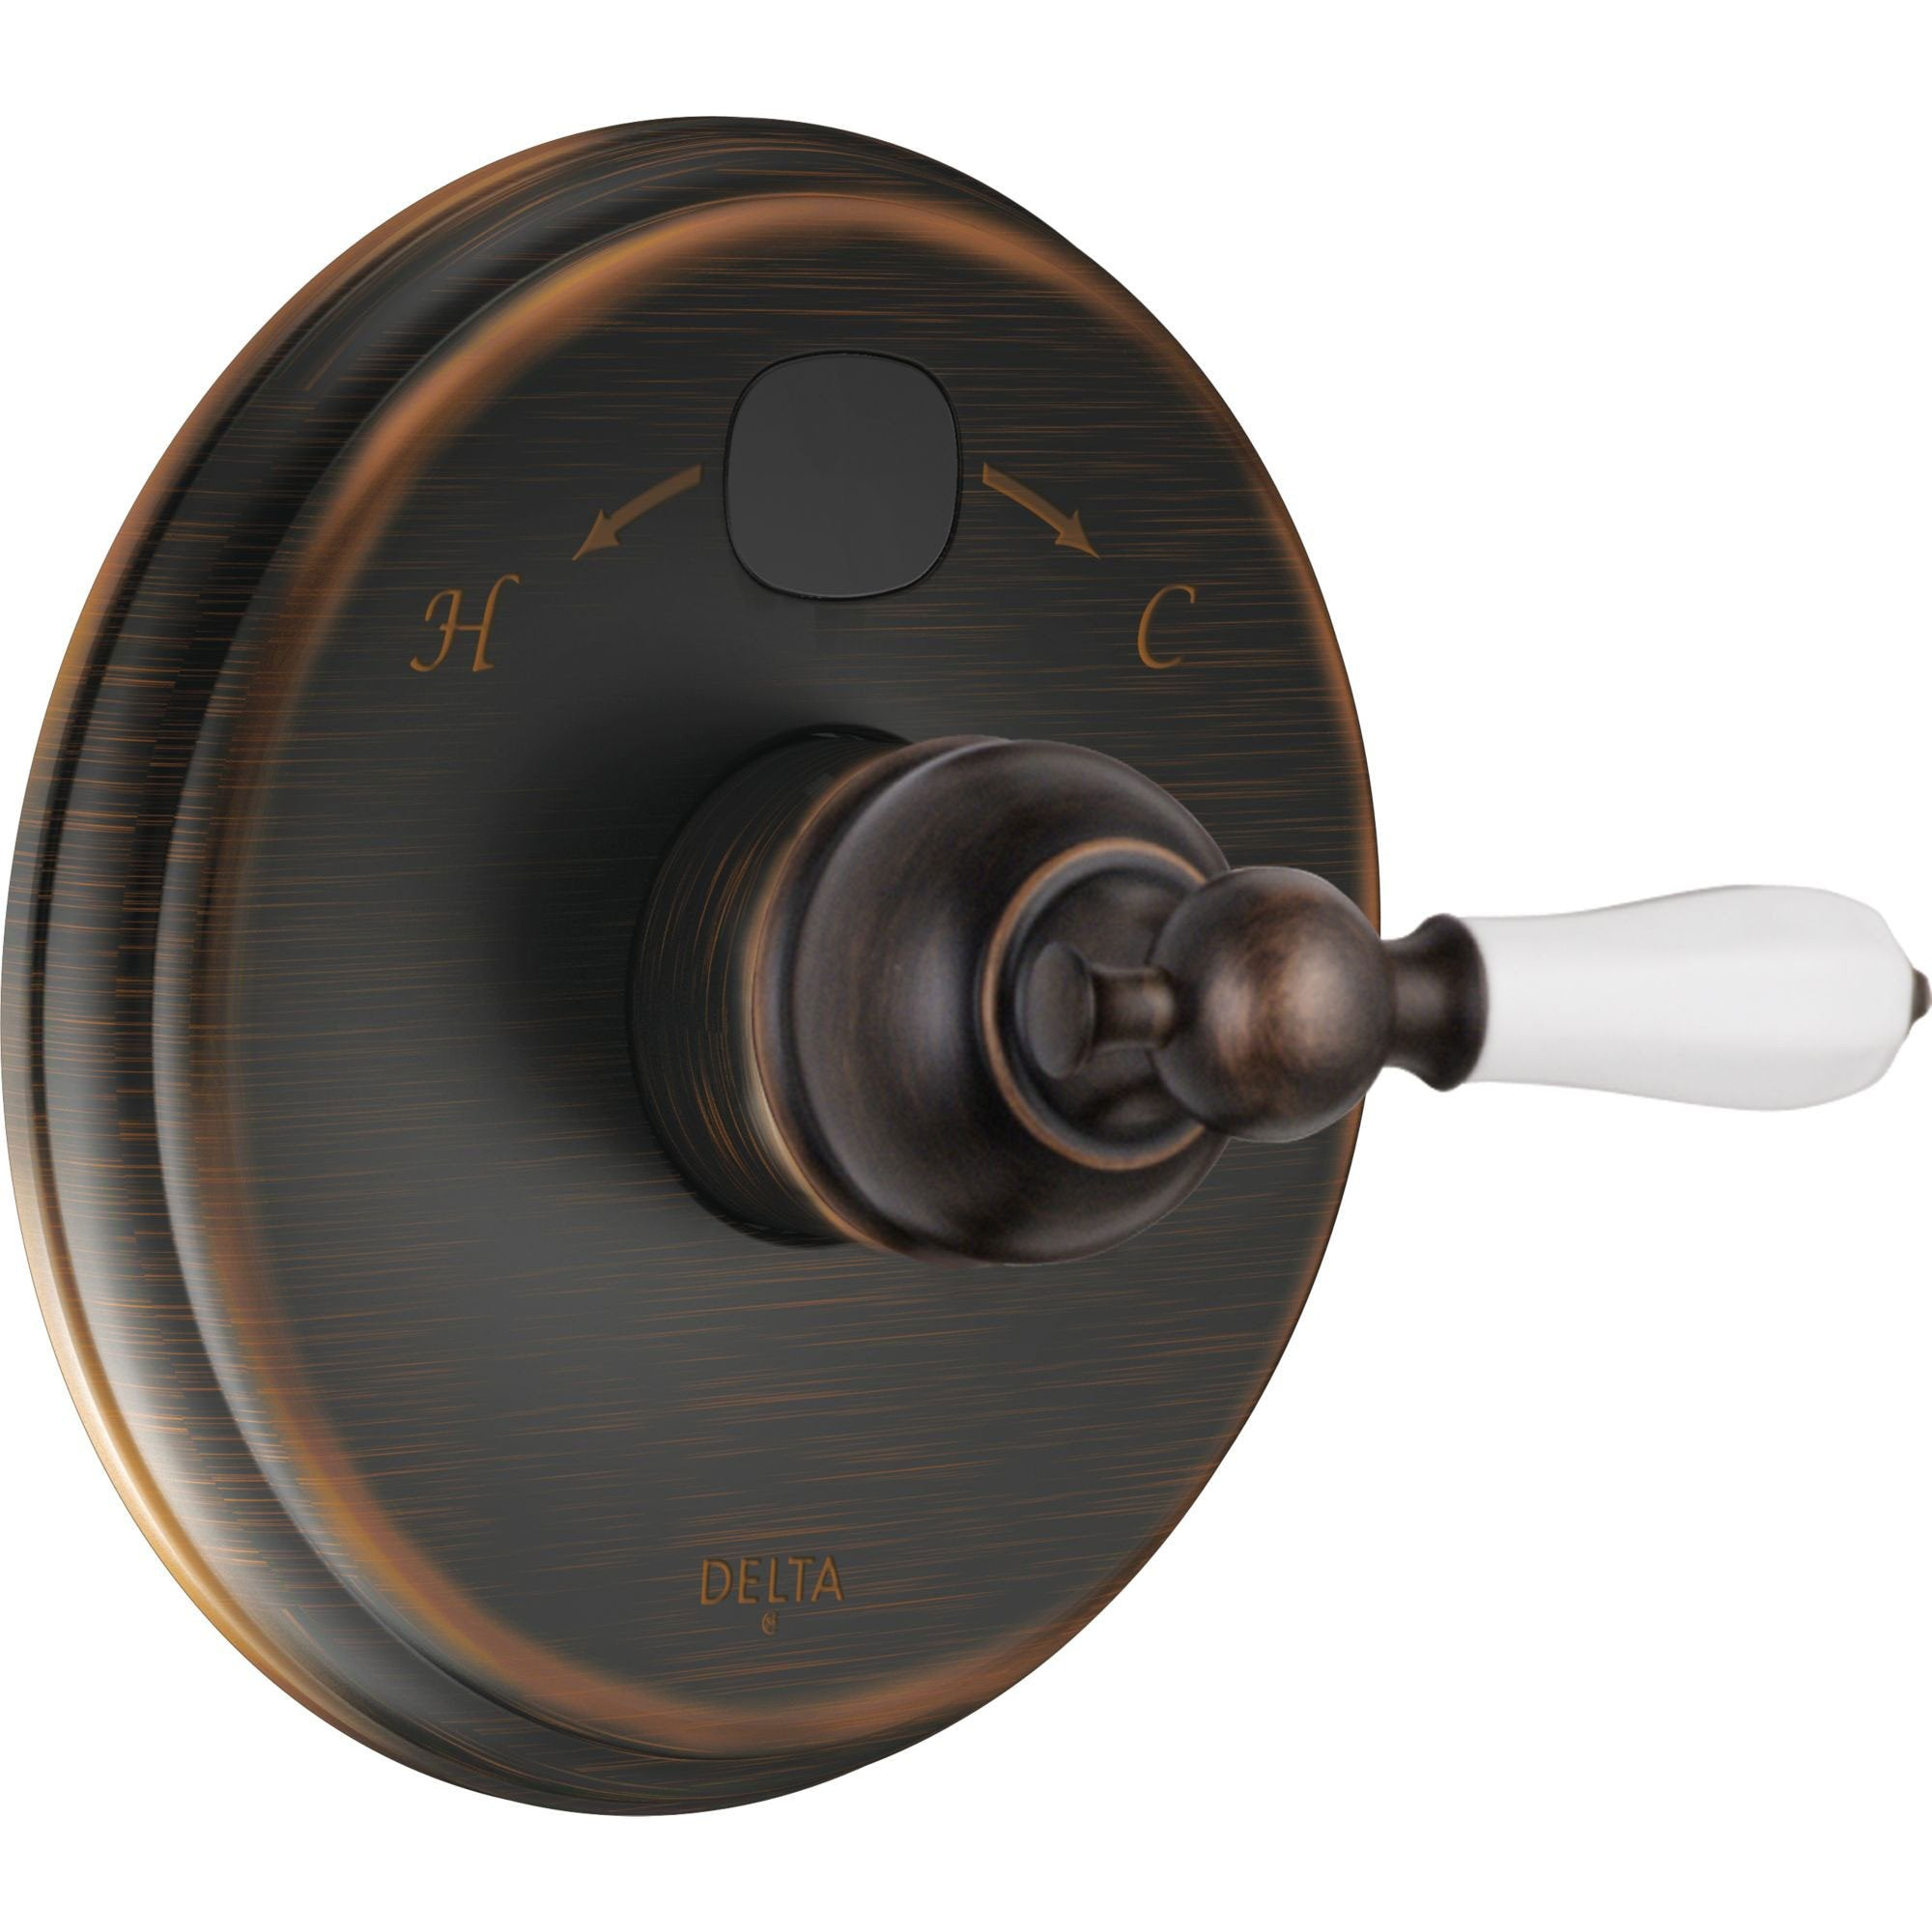 Delta Traditional 14 Series Temp2O Venetian Bronze Finish Pressure Balanced Shower Faucet Control with Digital Display INCLUDES Rough-in Valve with Stops and White Porcelain Lever Handle D1279V